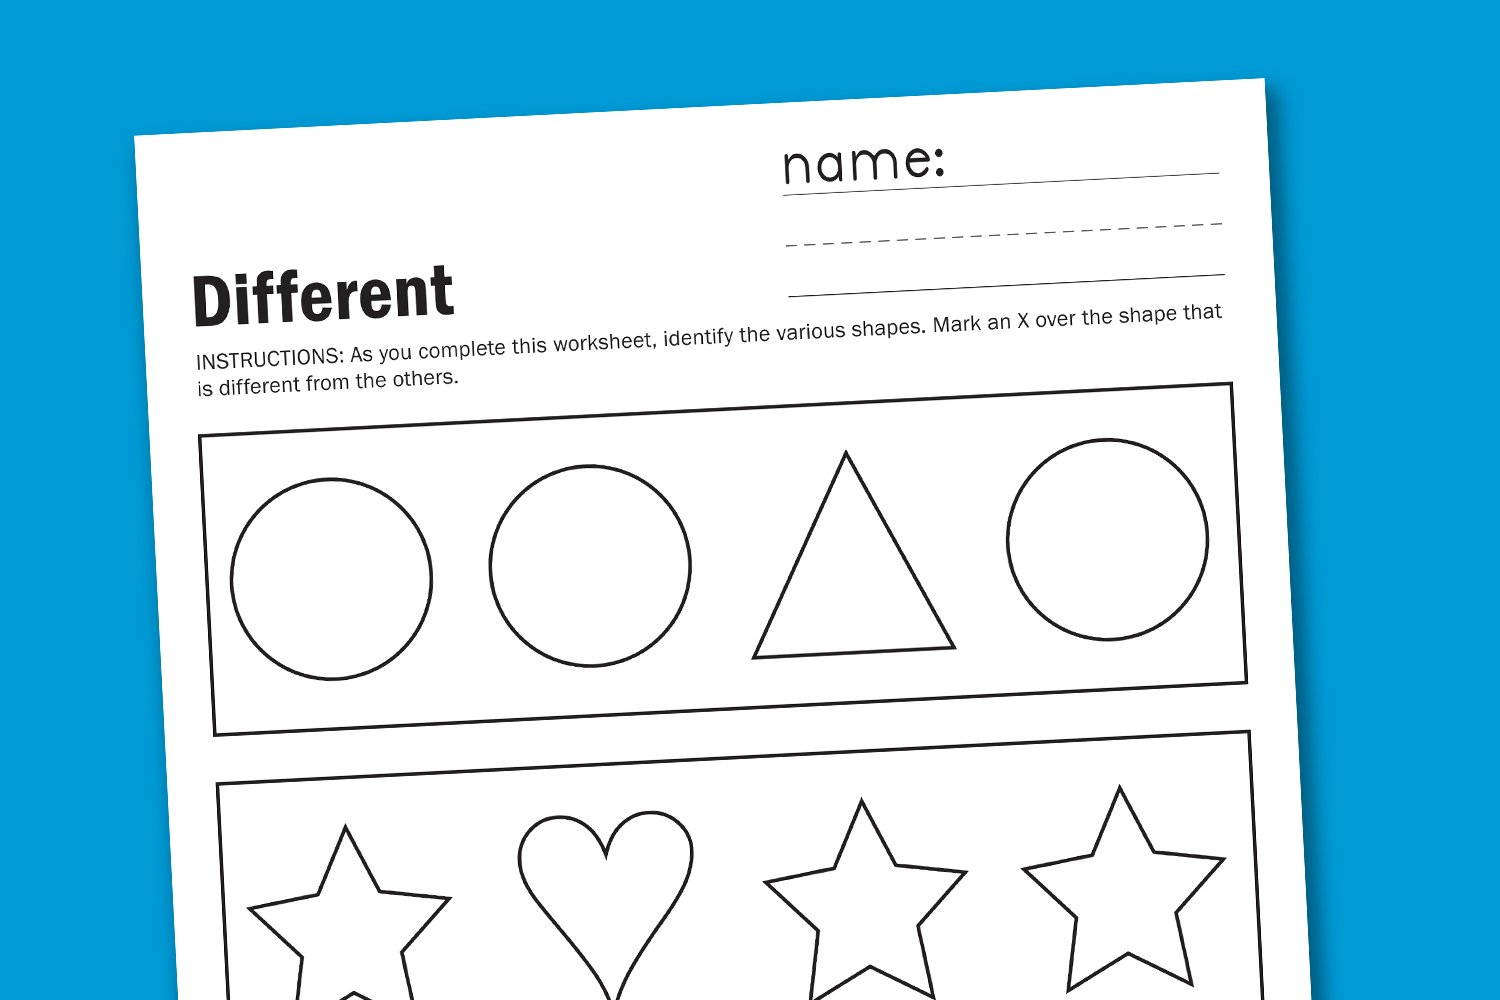 Colouring shapes activities - While